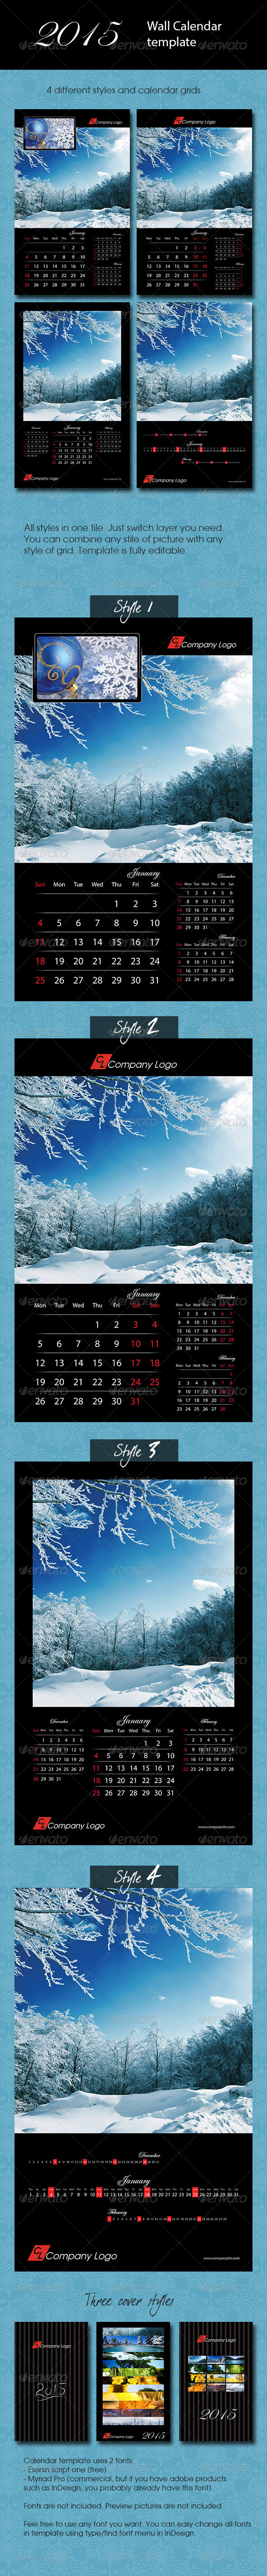 GraphicRiver 2015 Black Calendar template 8676017